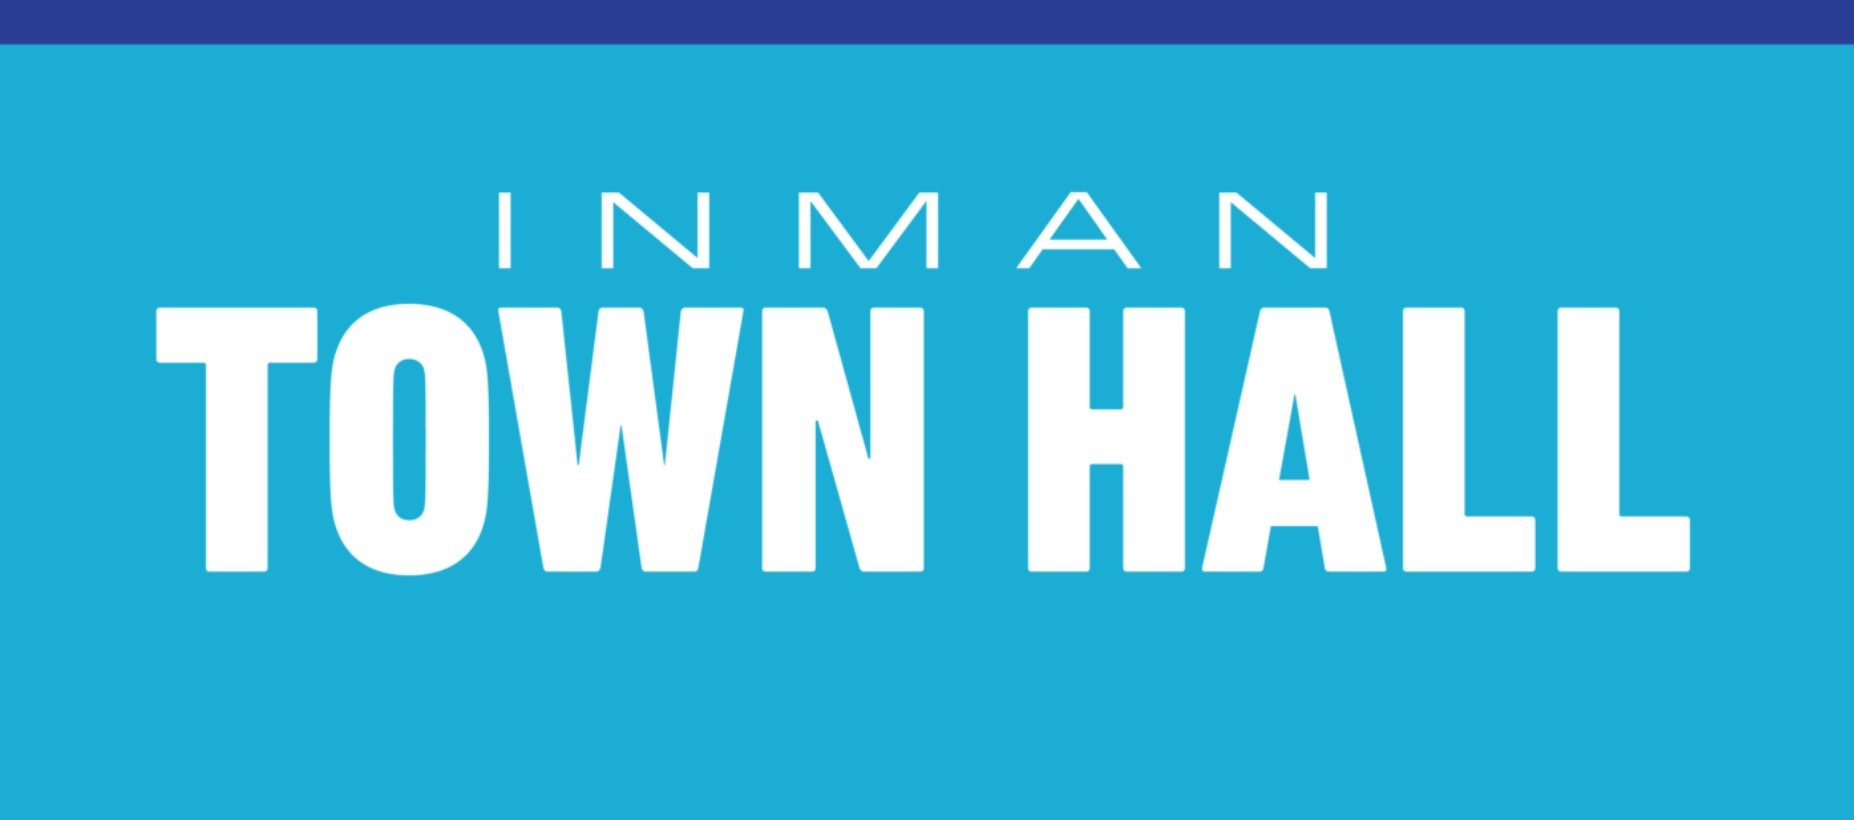 Announcing the next Inman Town Hall